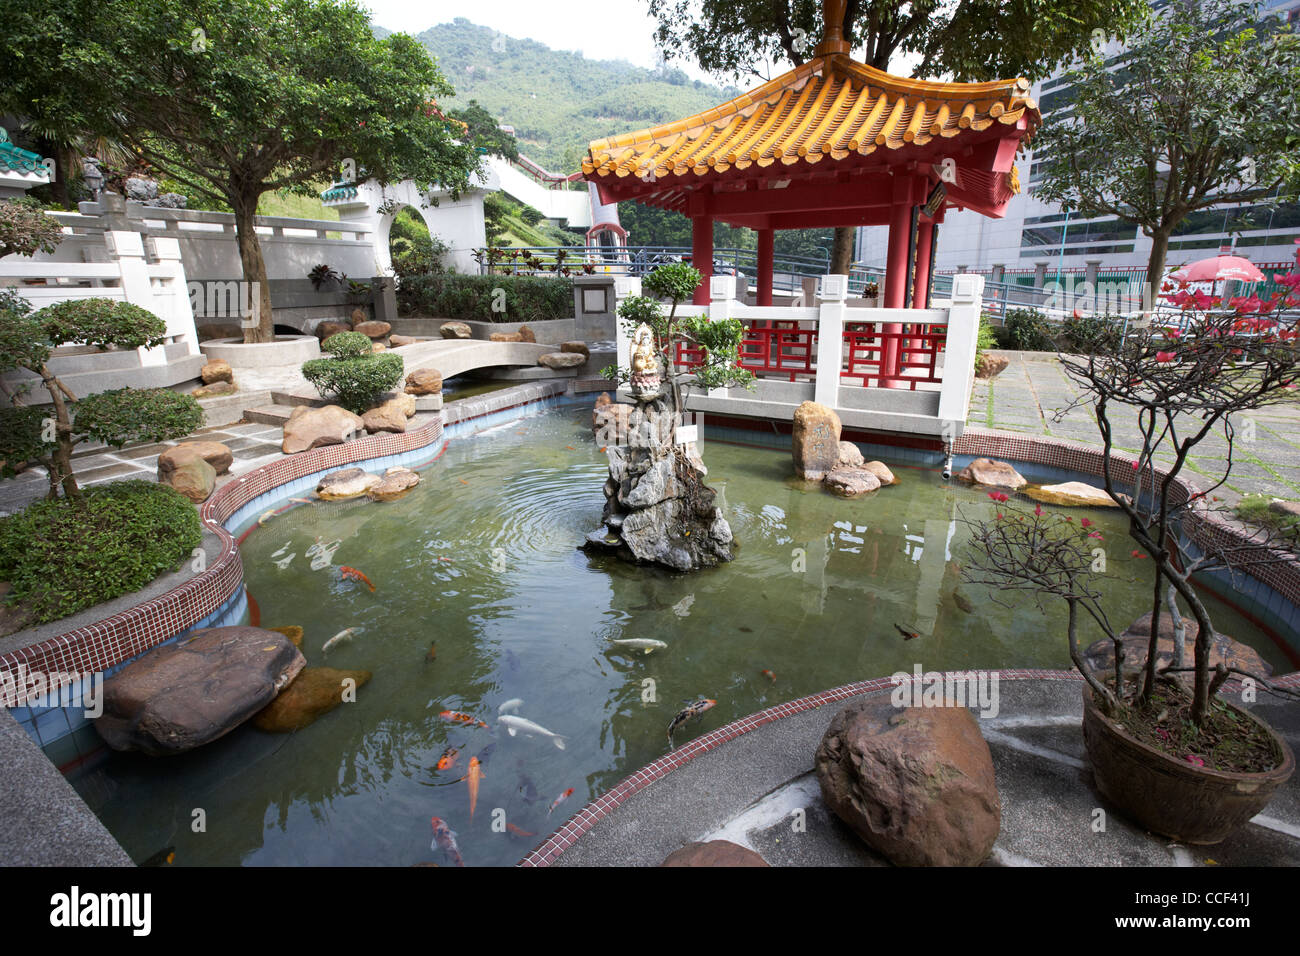 Ornamental garden and koi carp fish pond po fook hill for Ornamental fish garden ponds